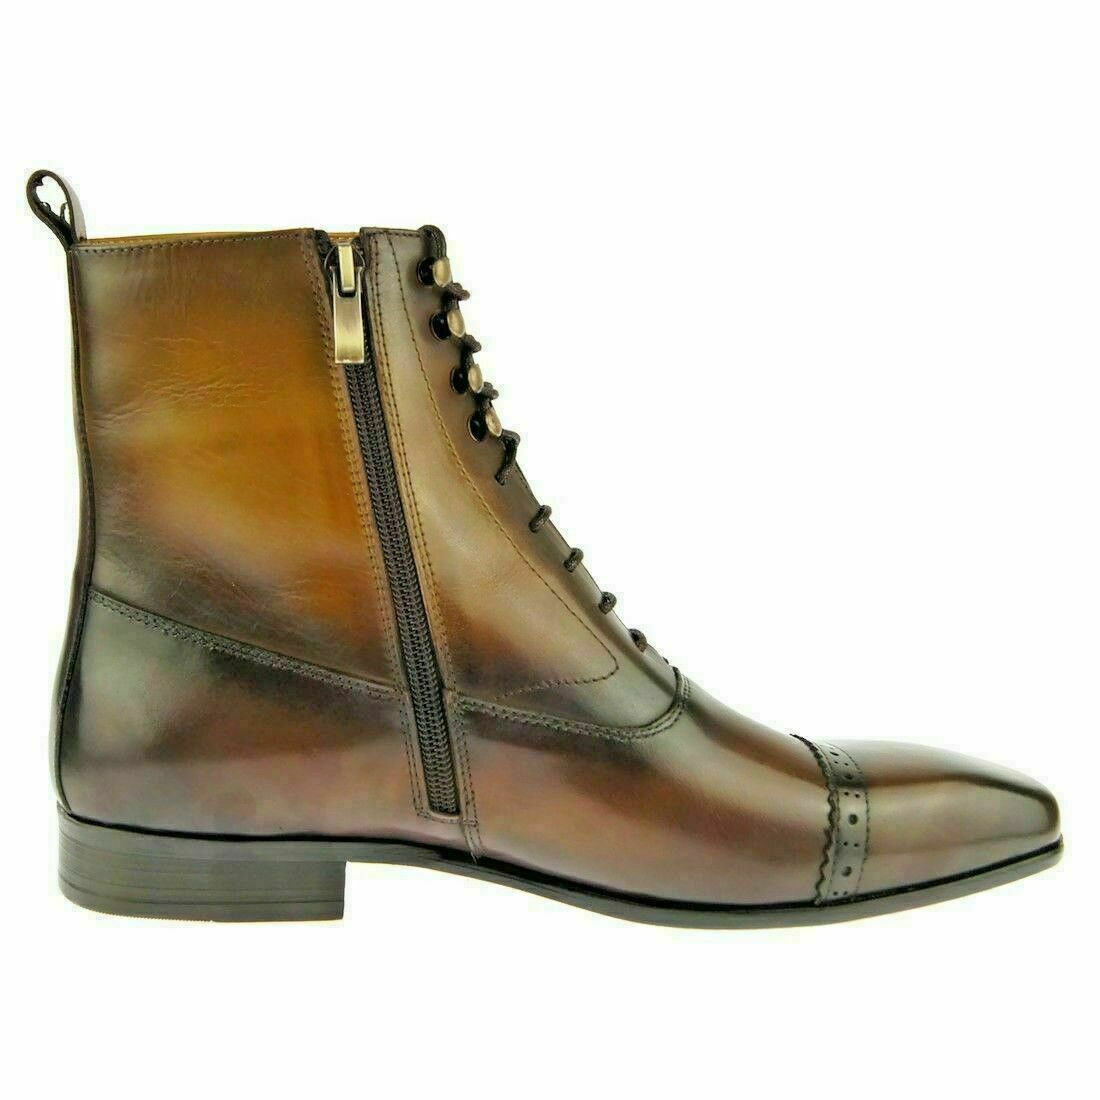 Handmade Men's Dark Brown High Ankle Lace Up & Zipper Boots